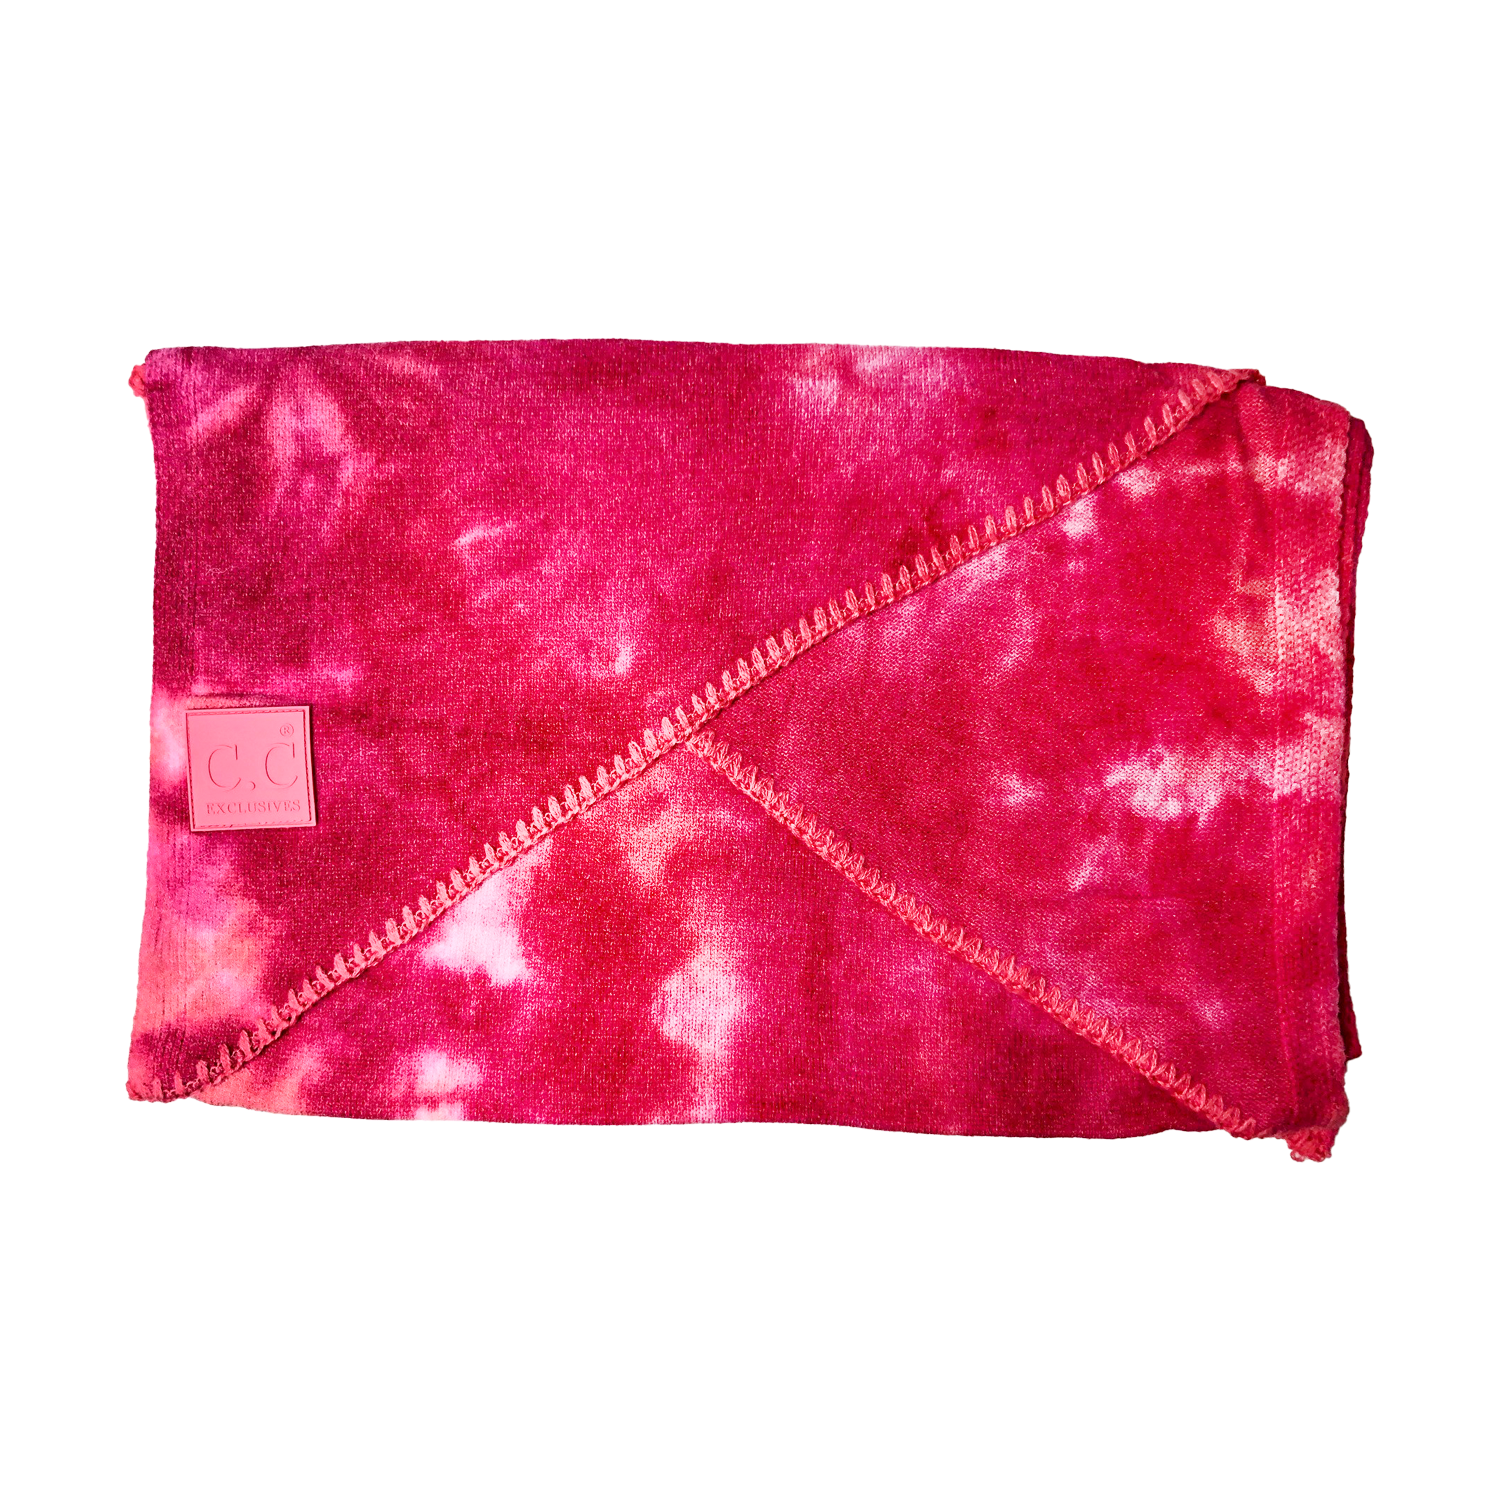 SF-7380 Tie Dye Scarf with C.C Rubber Patch - Fuschia/Pink